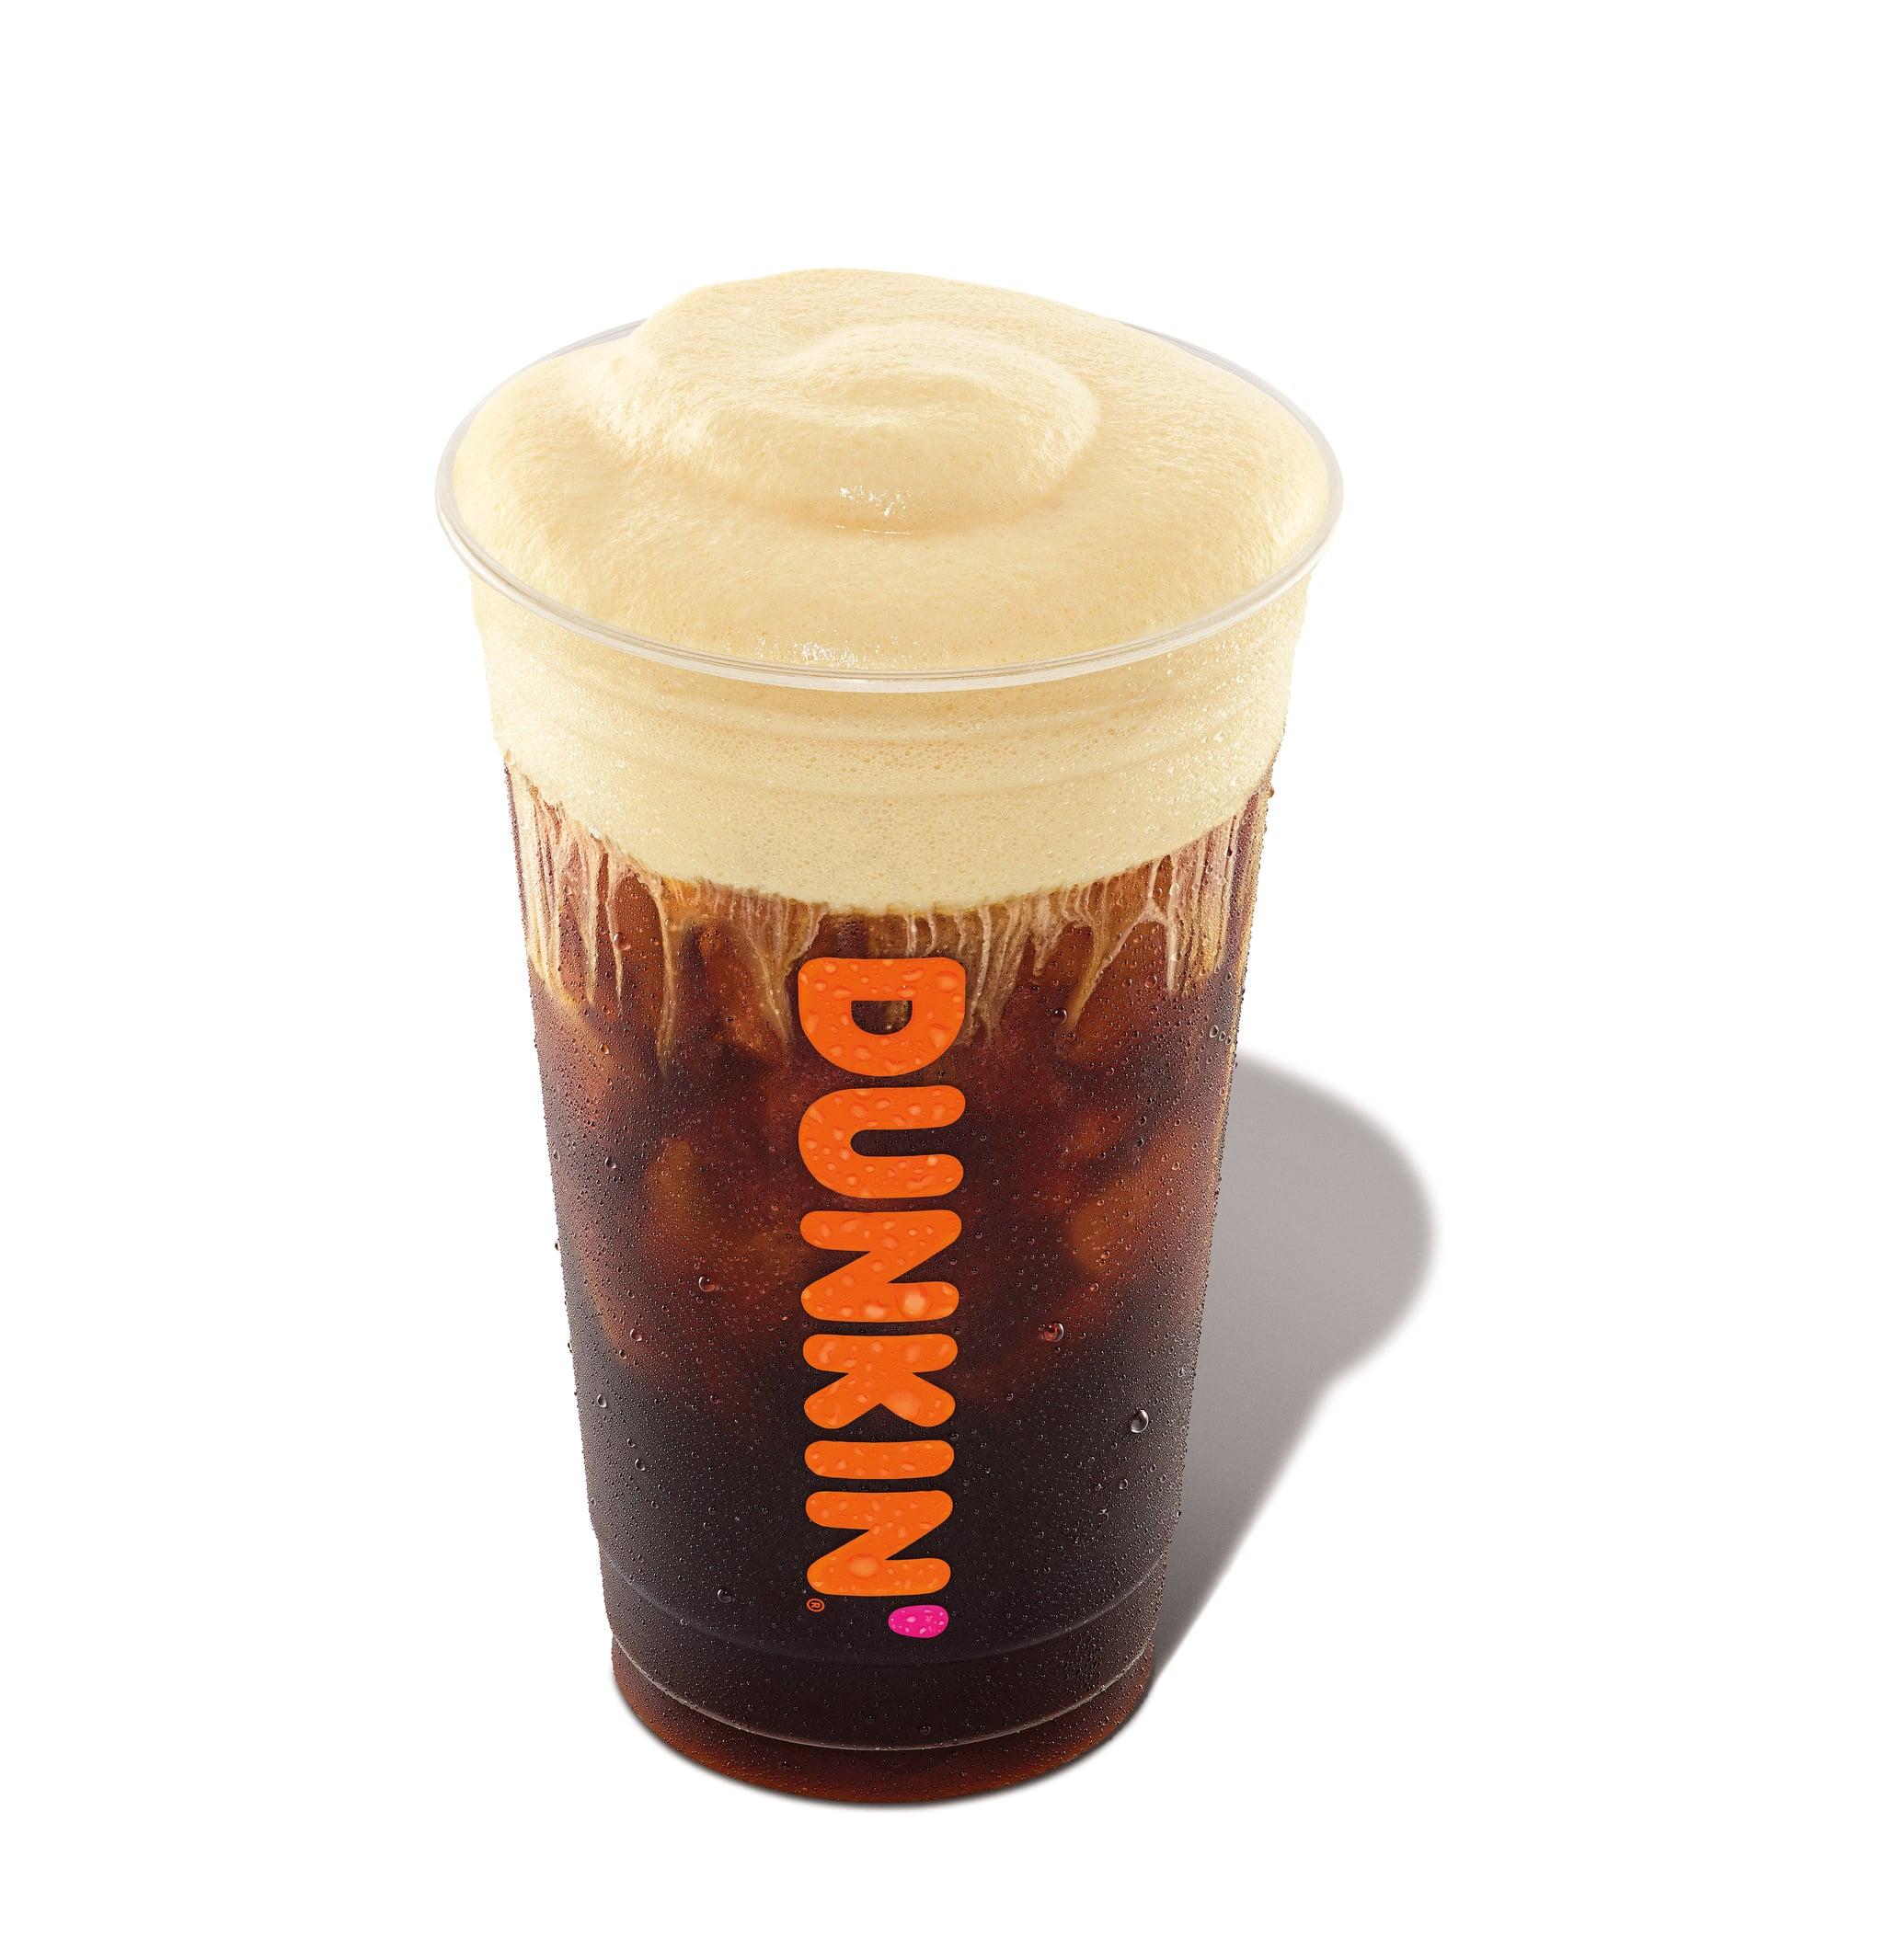 2021 Q1 Window 5 Retouched Product Image (Library Perspective):Pumpkin Cream Cold Brew with Cold Foam; branded plastic cup(image + shadow + white background/transparency)